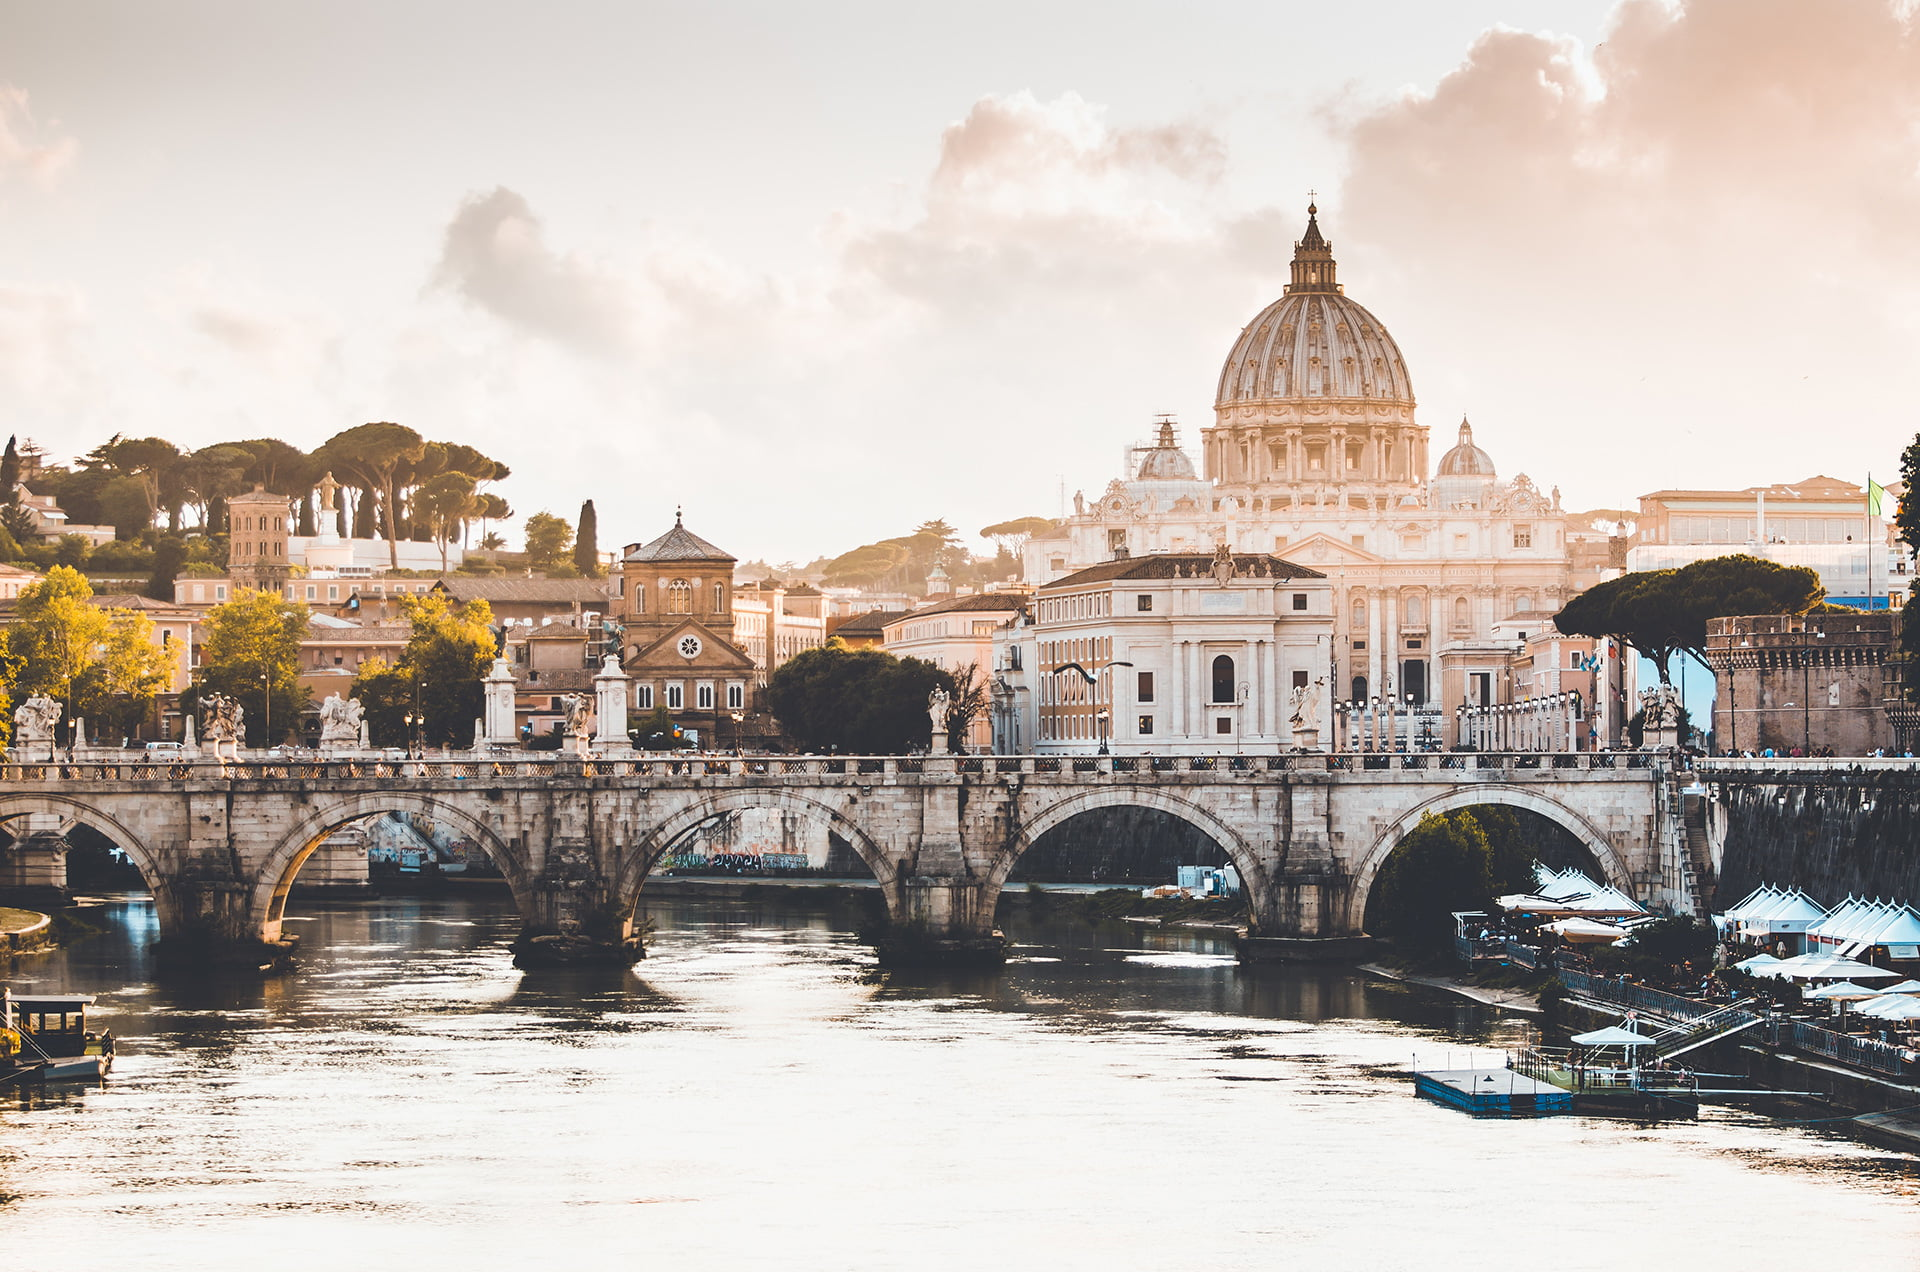 view of the Vatican and bridge in Rome